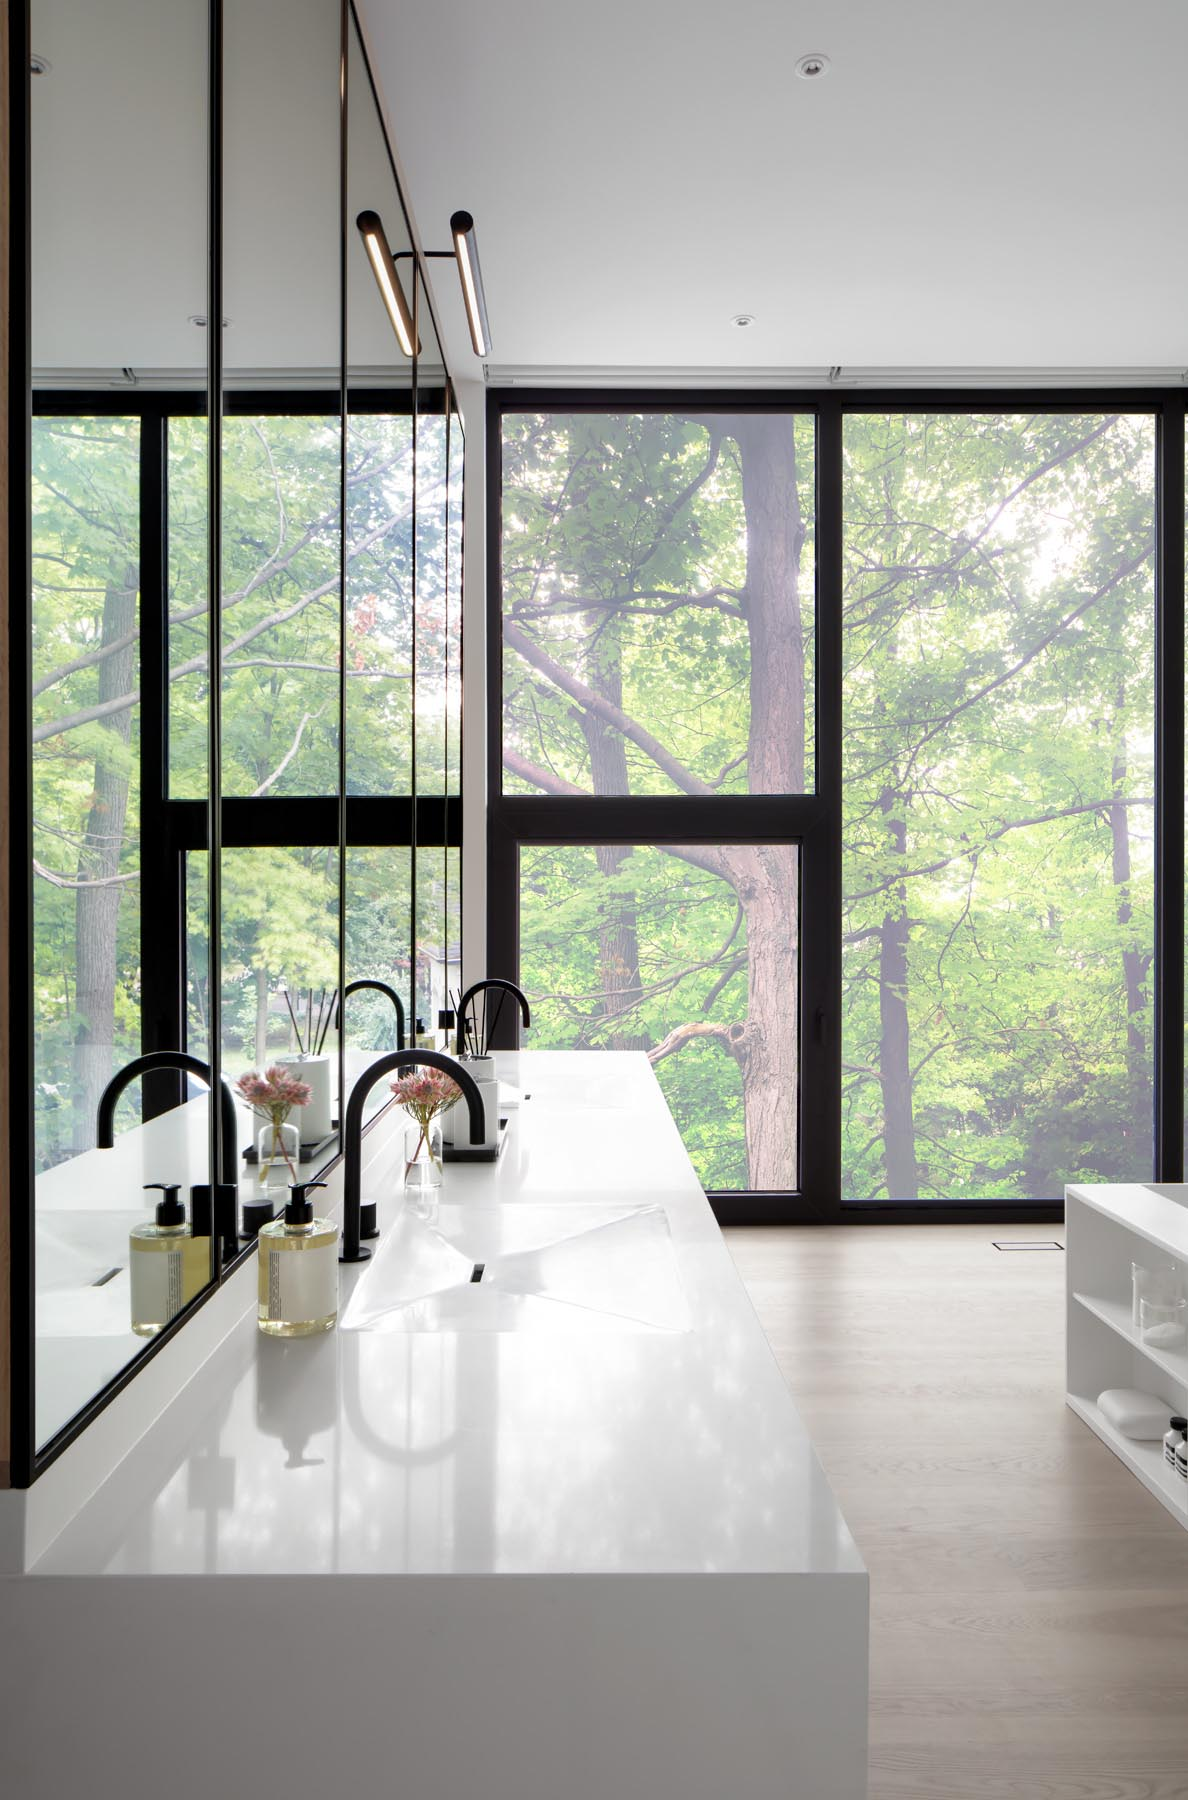 A wall of wood closets link the bedroom to this modern en-suite bathroom, that showcases a white vanity with large mirrors, a built-in bathtub, and a double shower with glass surround.